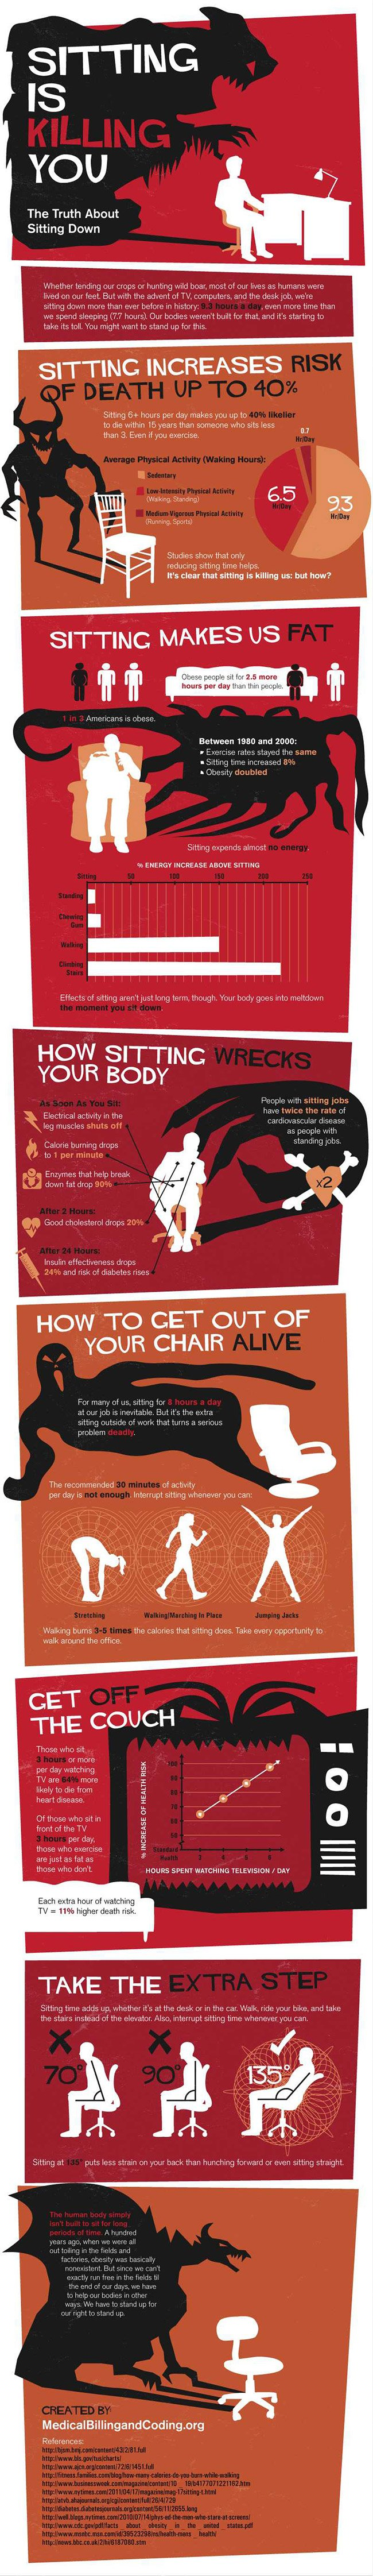 sitting-killing-you-infographic